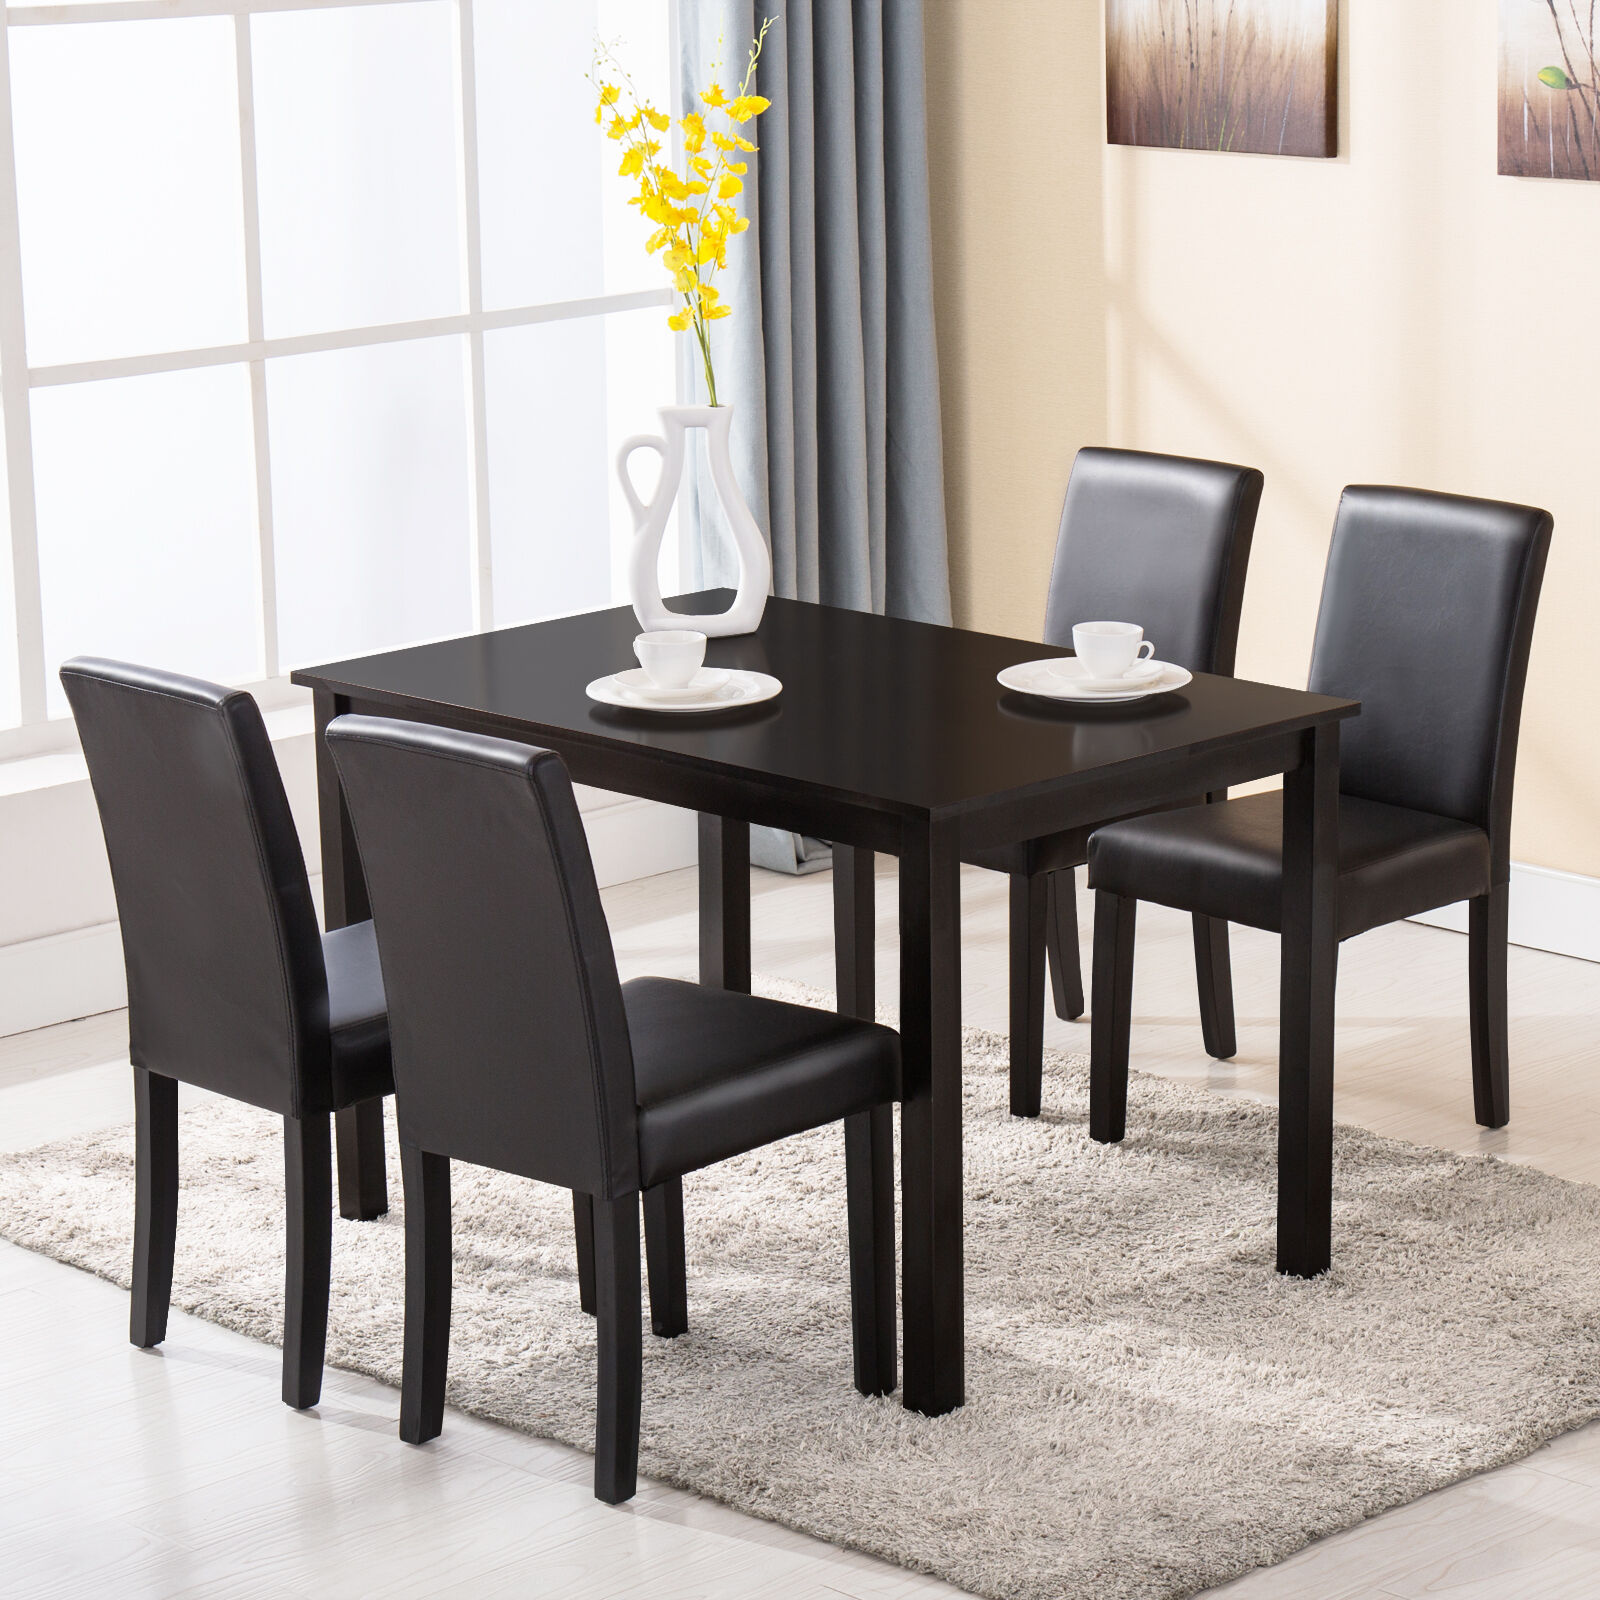 Kitchen Dining Room Chairs: 5 Piece Dining Table Set 4 Chairs Wood Kitchen Dinette